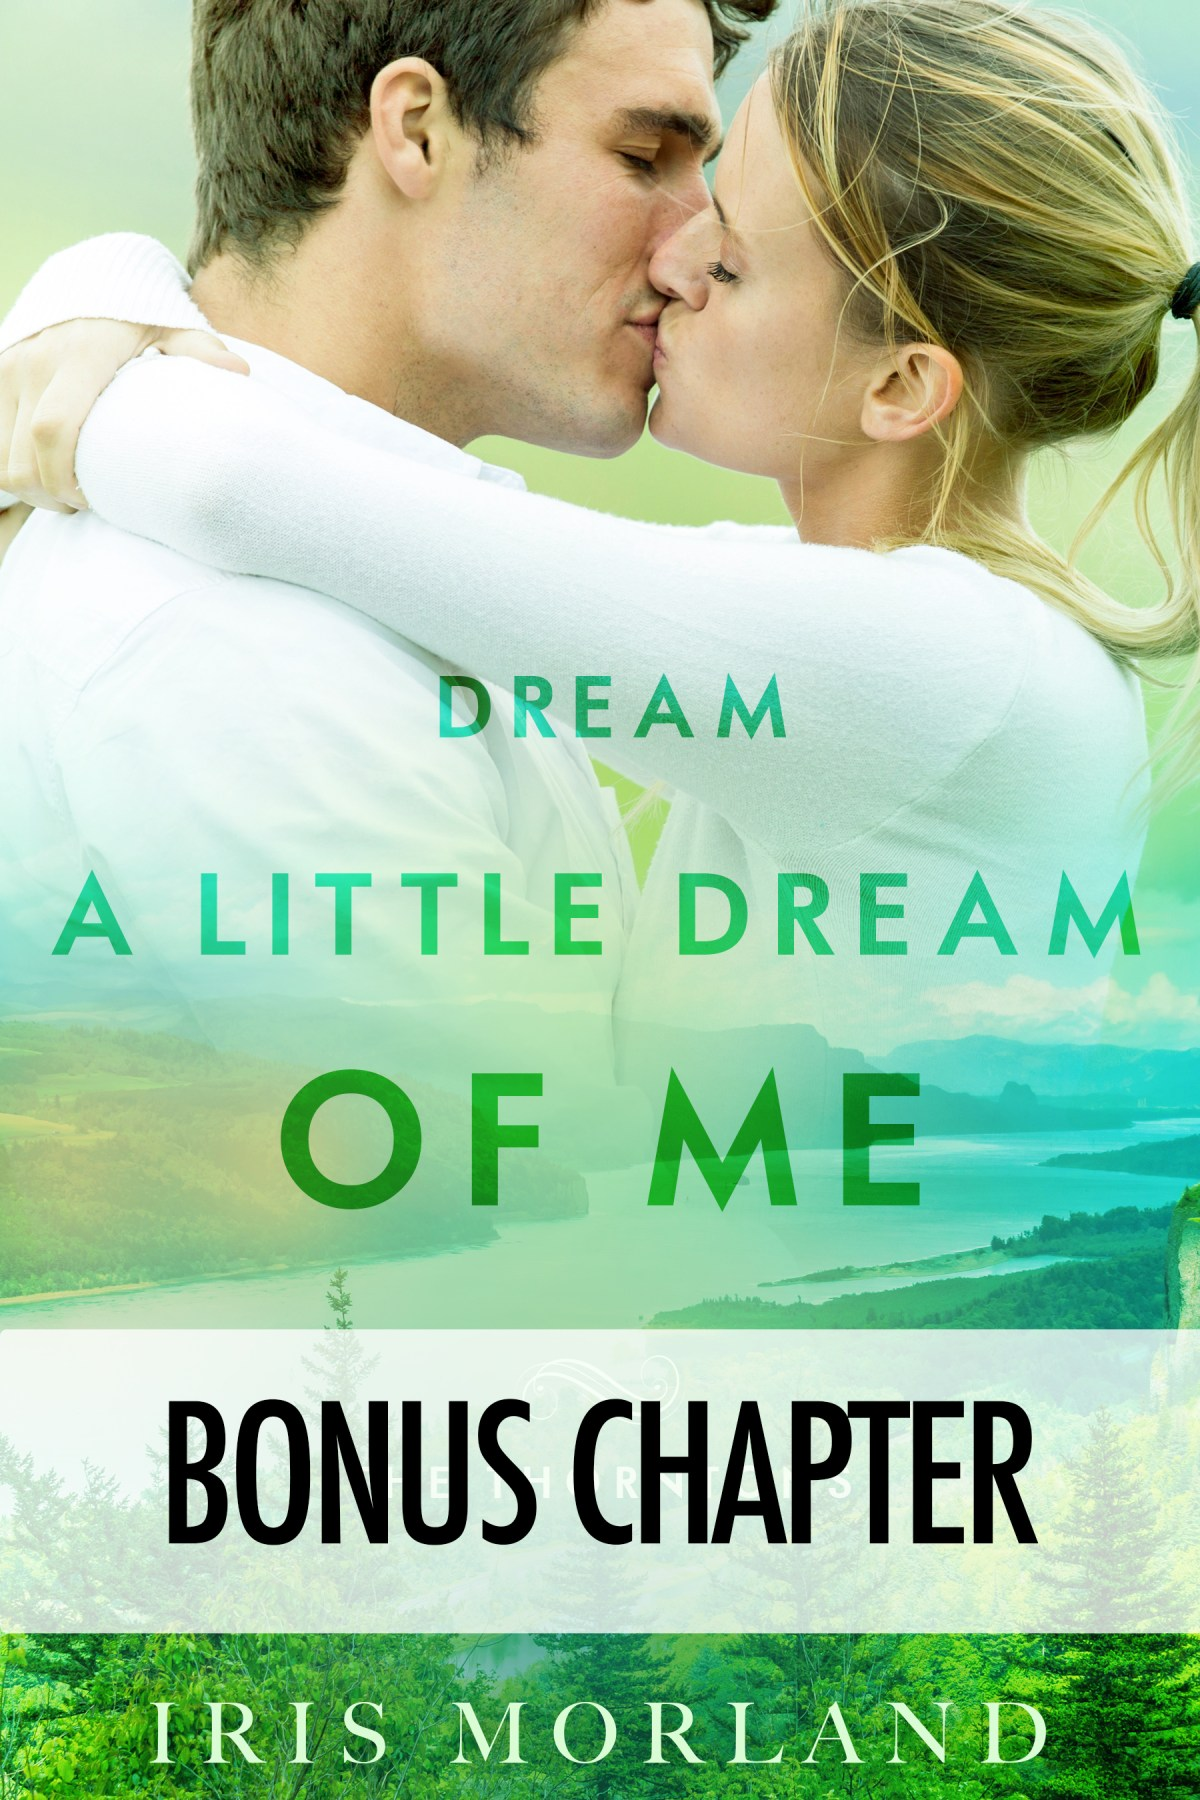 dreamalittledreamofme bonus chapter